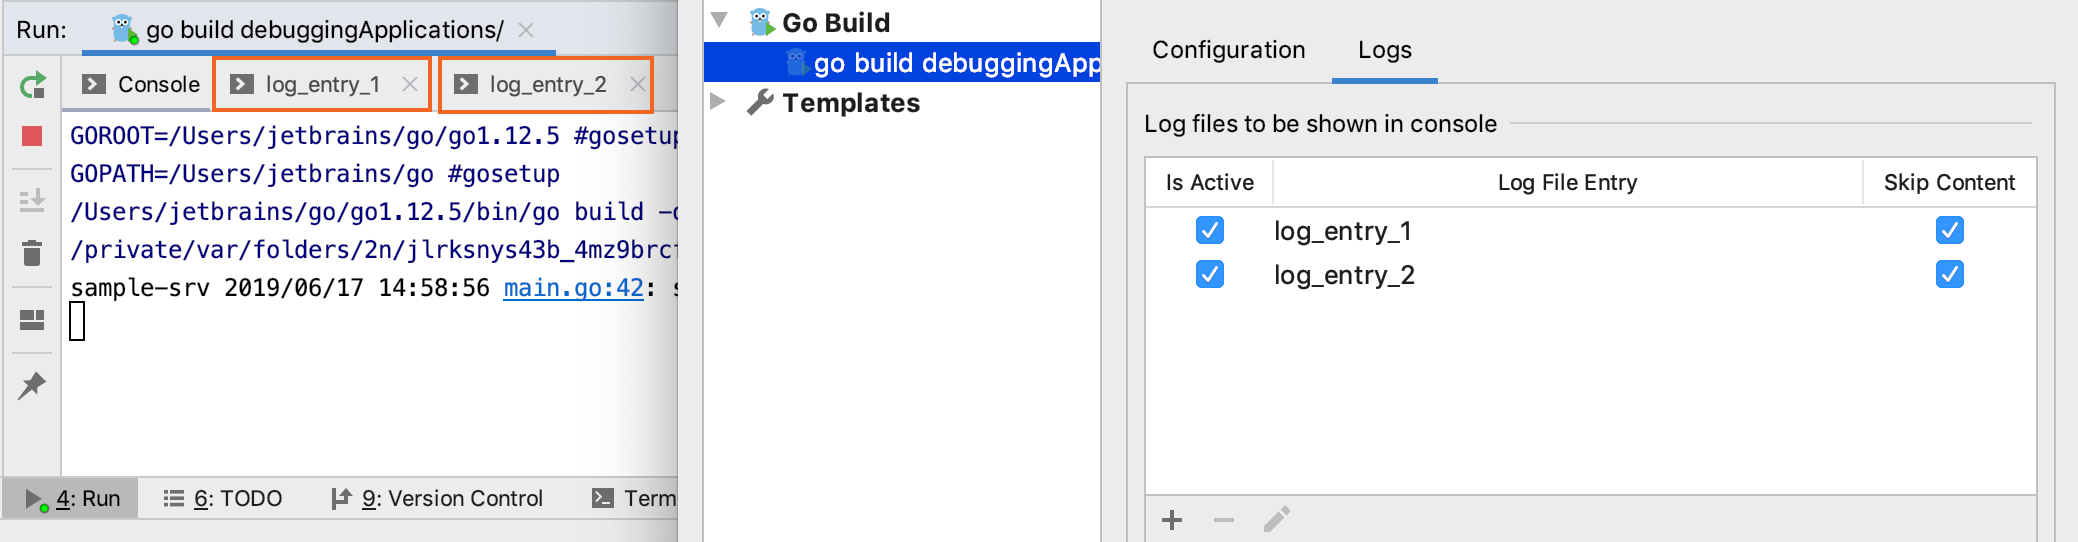 Configure log entries